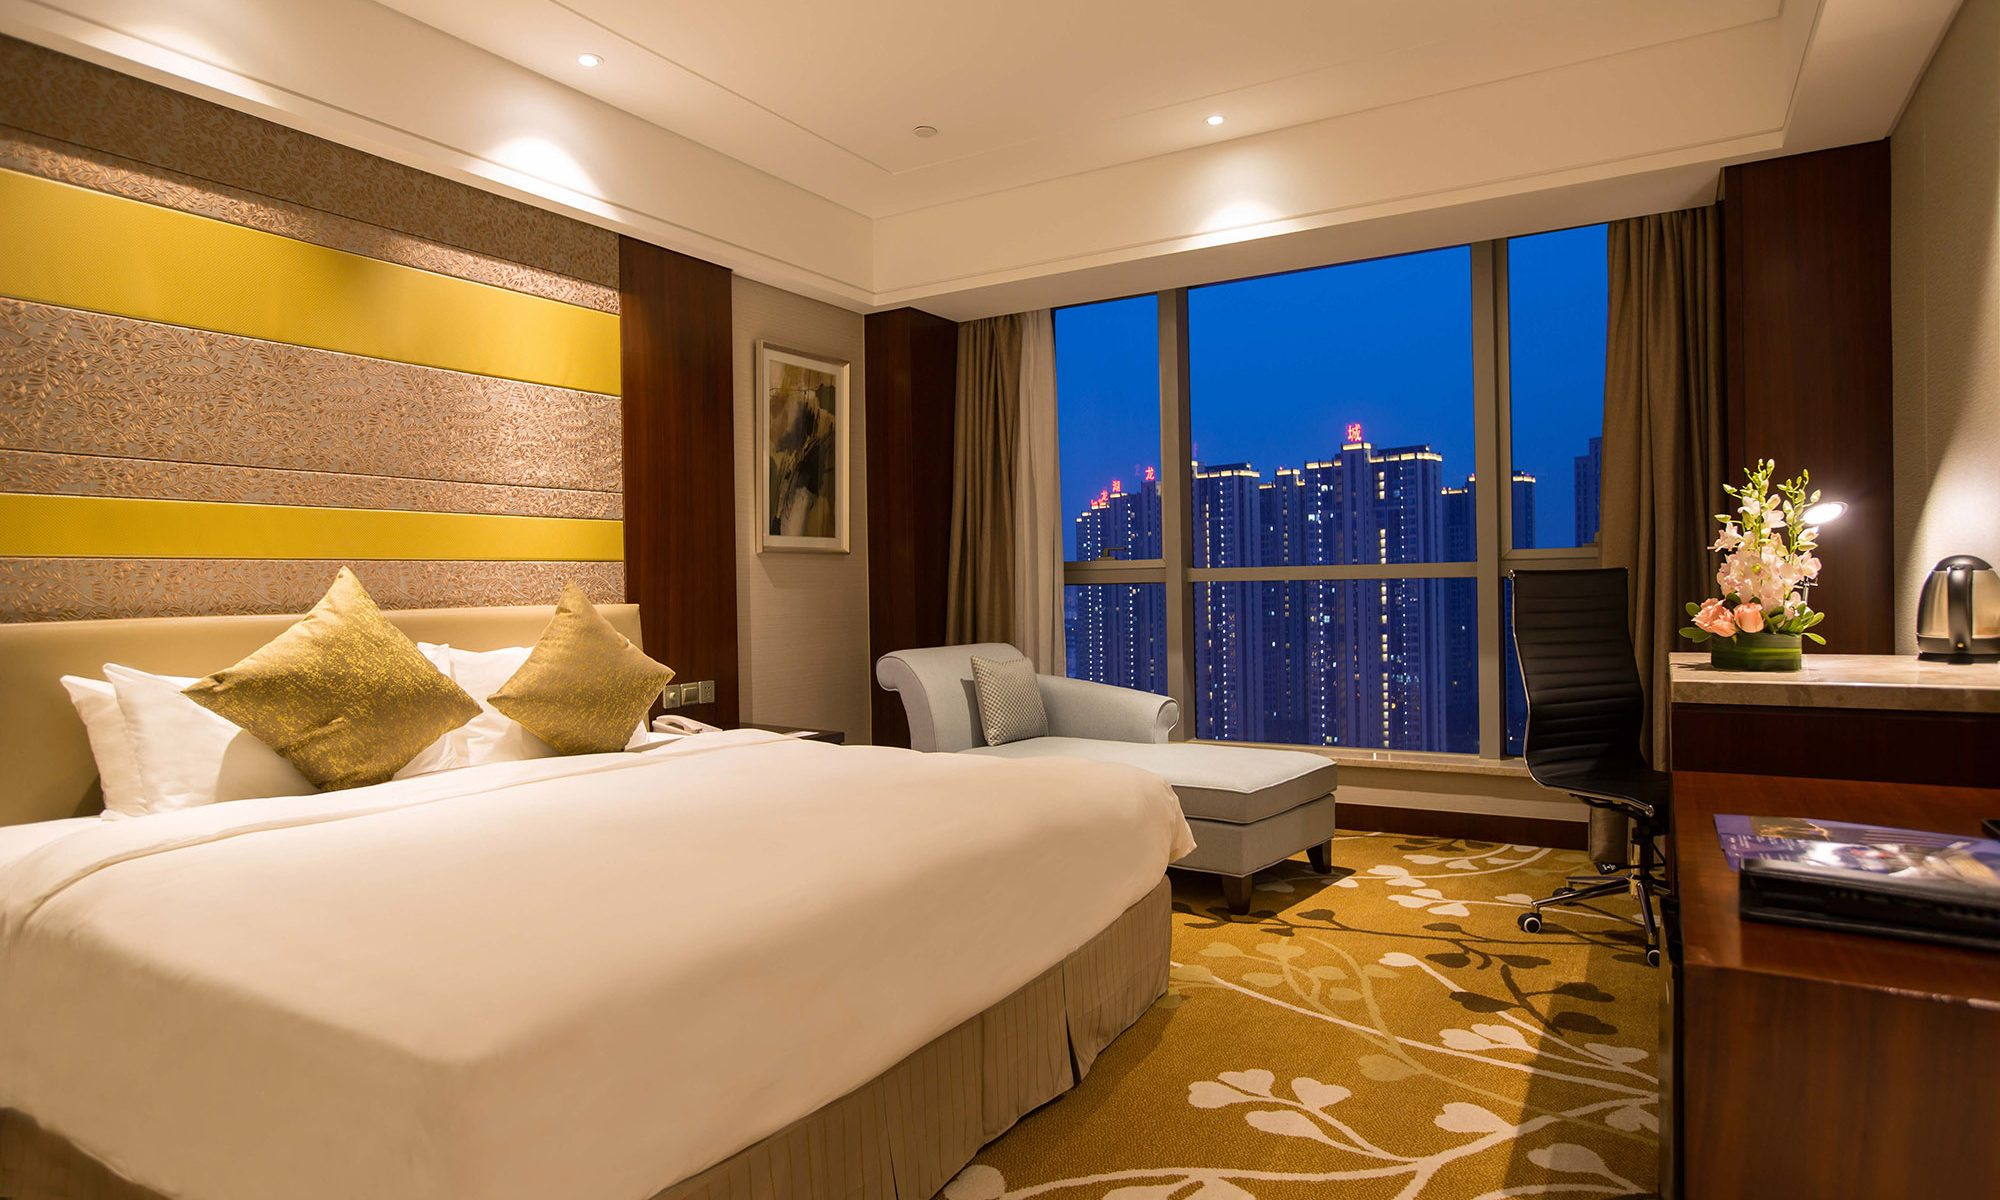 dusitthani-qingfeng-Superior Room, Zhonghang Tower image